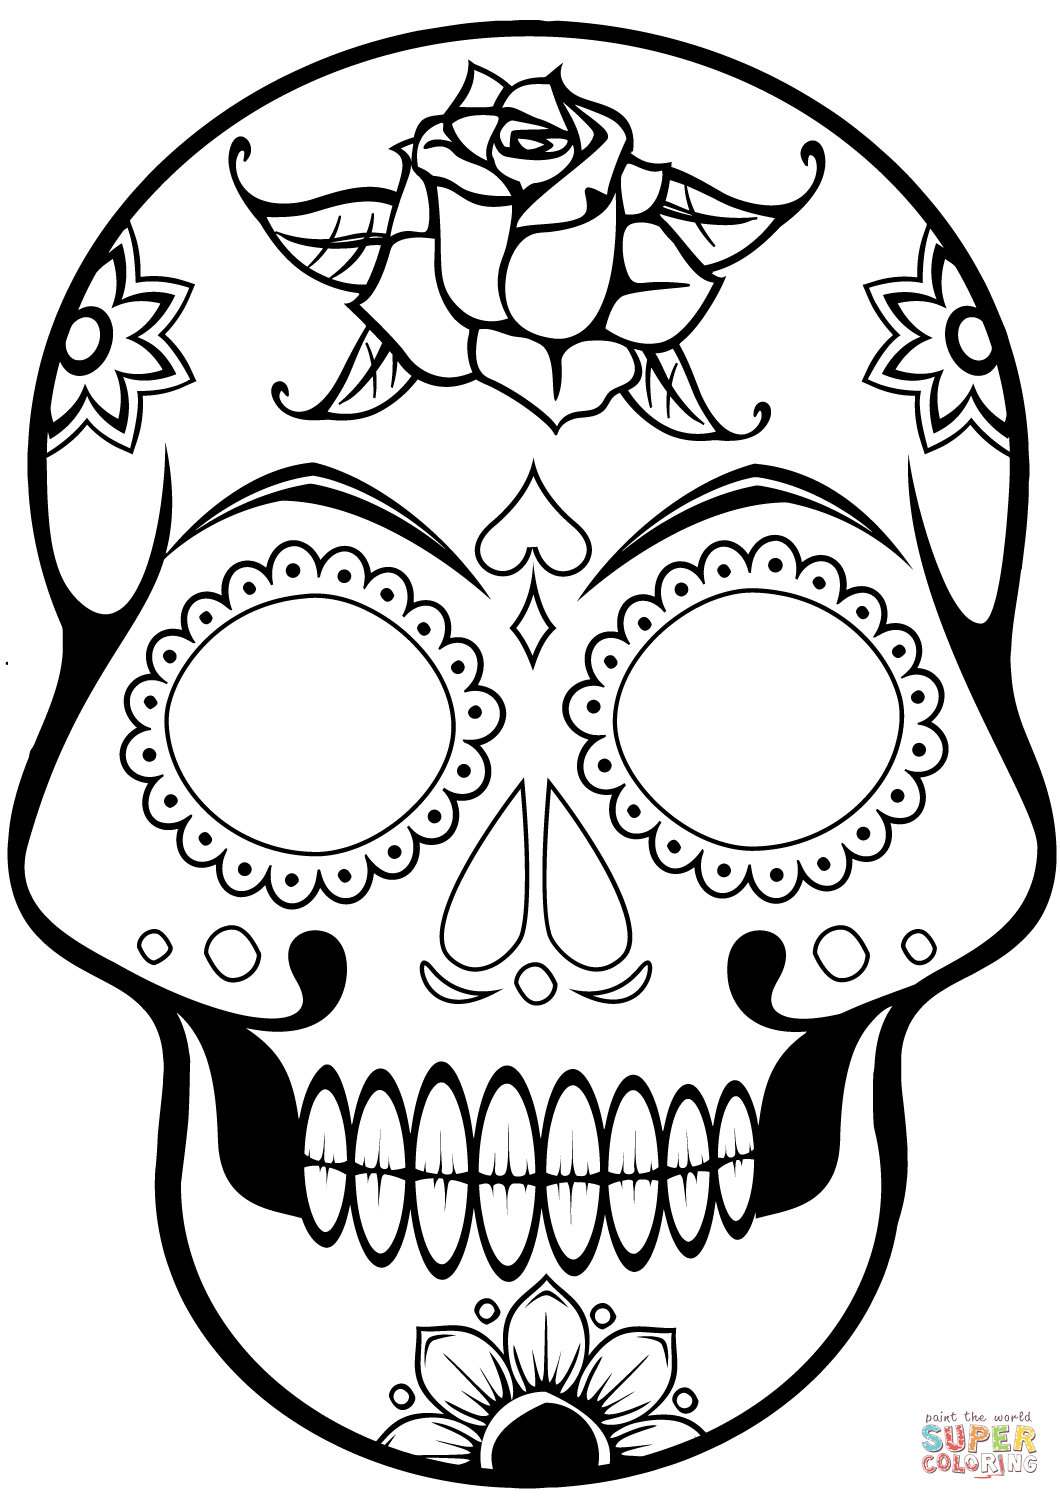 coloring skull for kids skull coloring pages free download on clipartmag for coloring skull kids